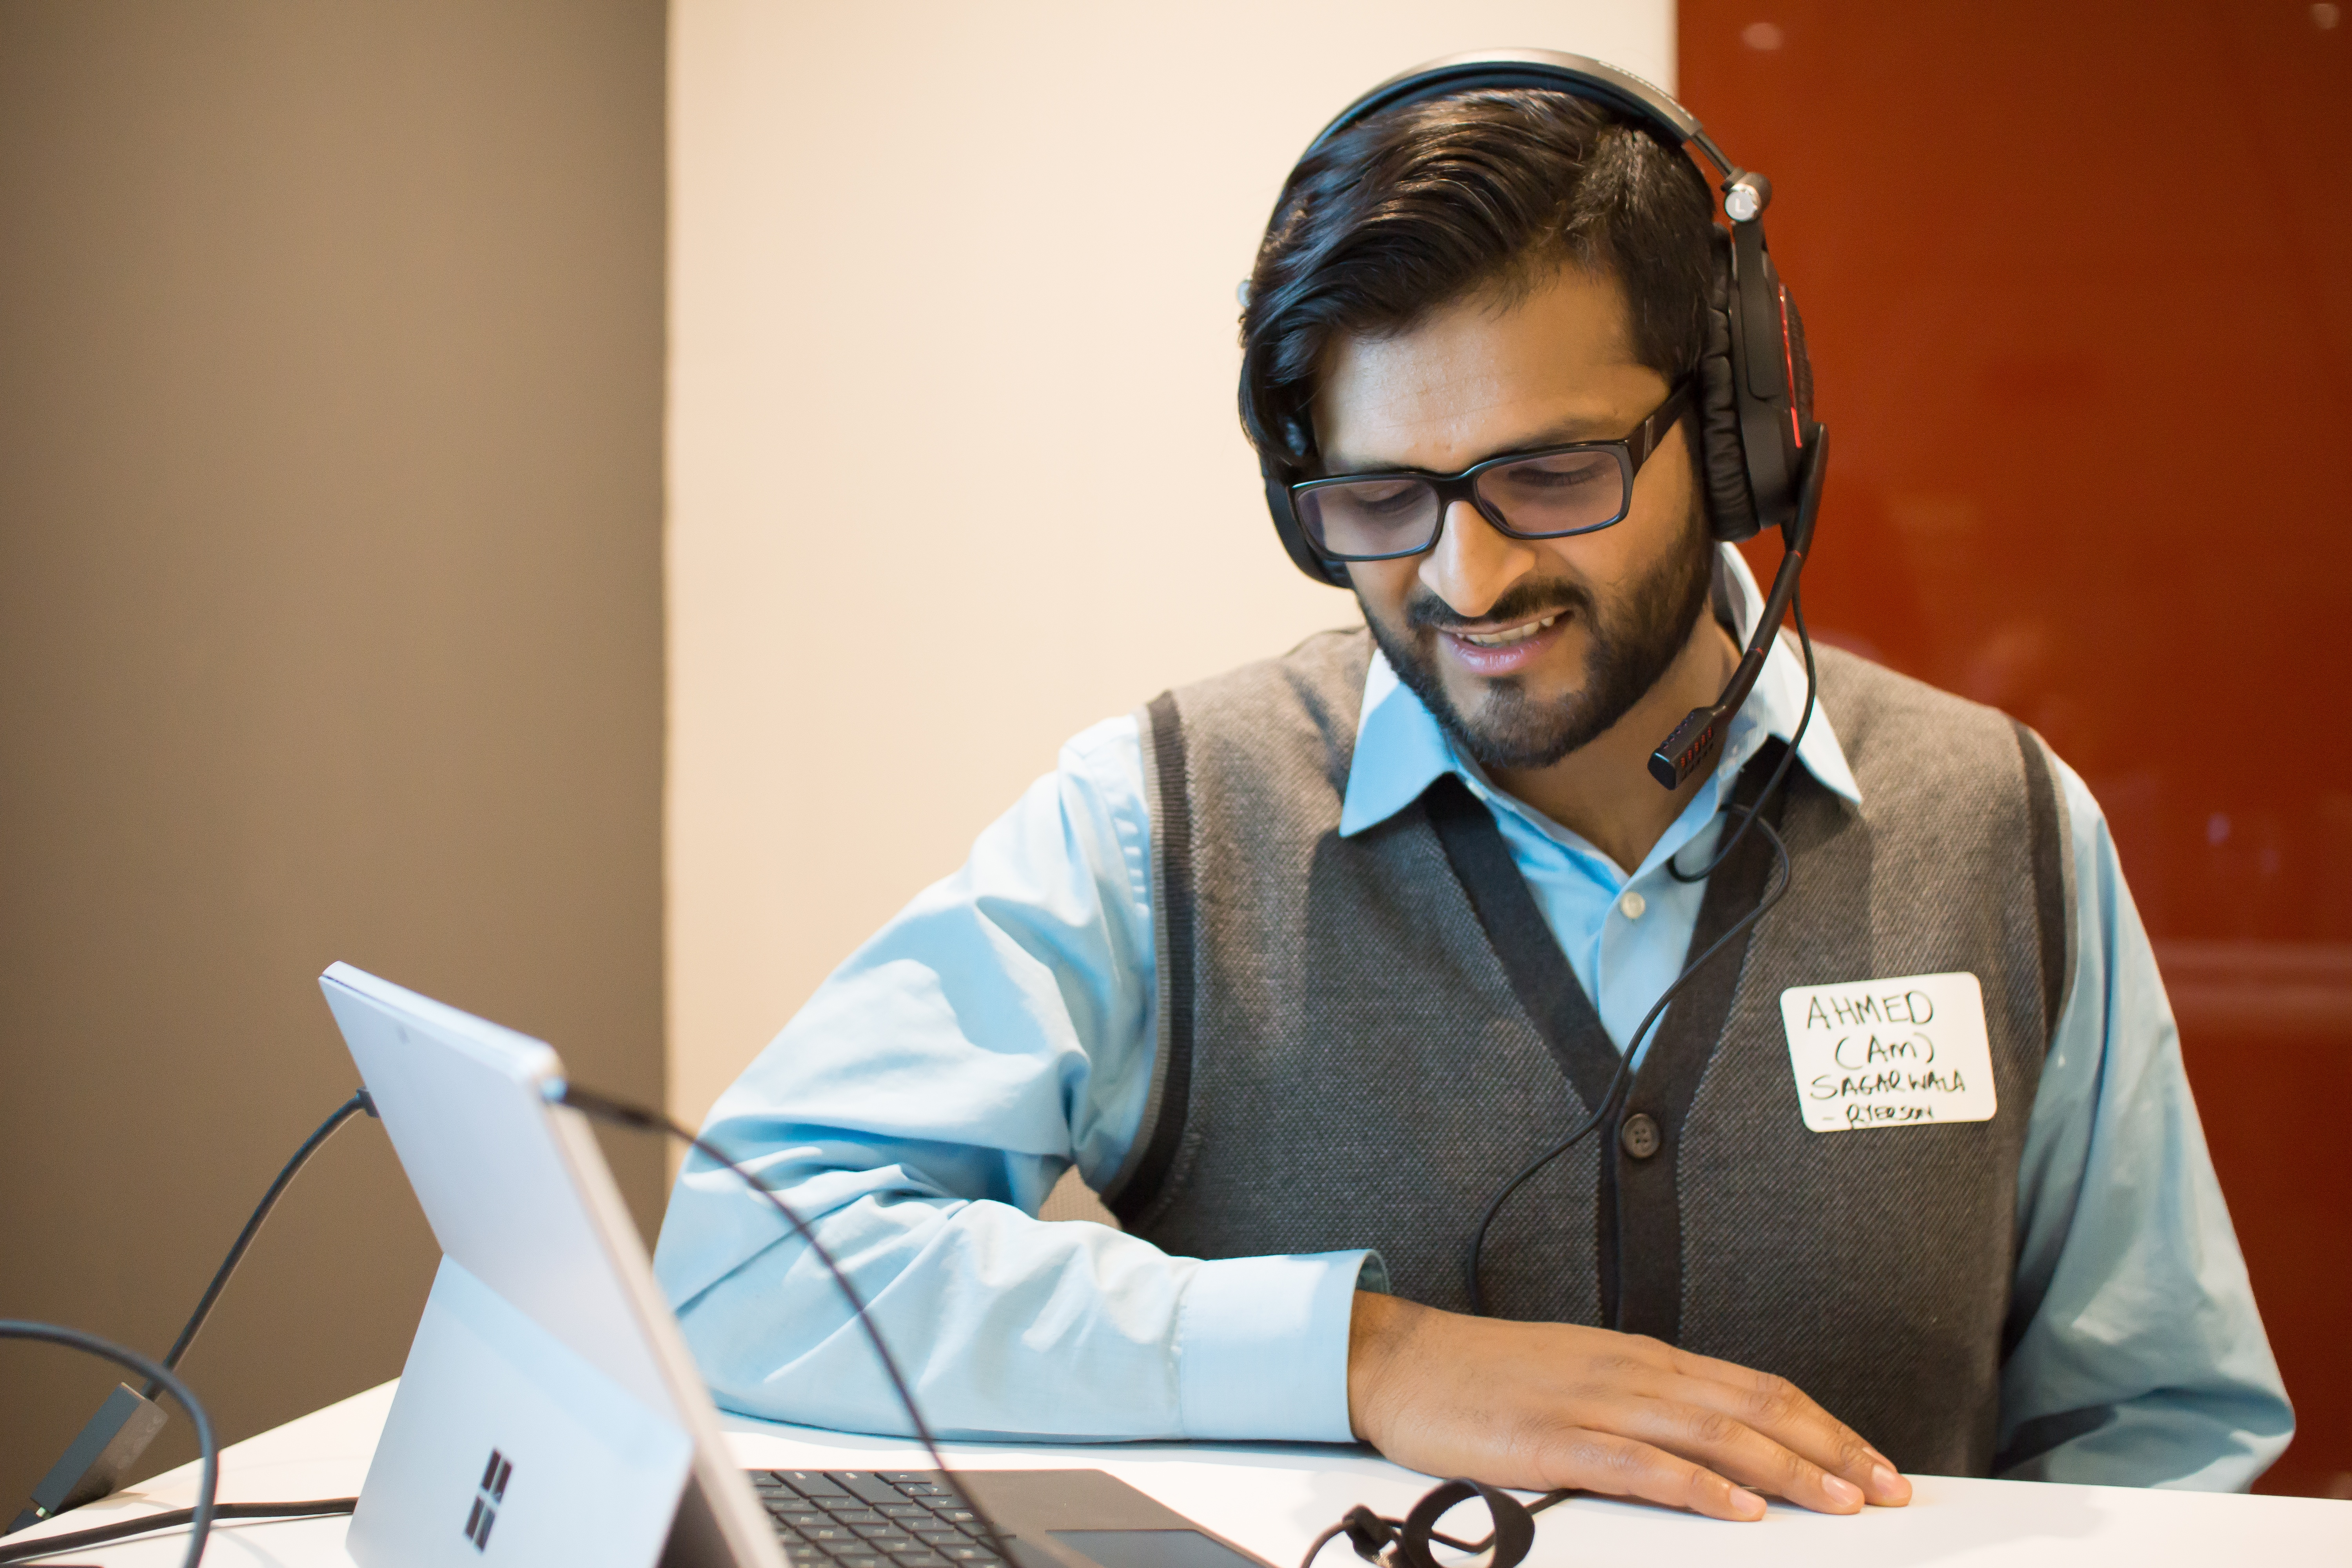 a smiling male looking at a laptop screen wearing a headset with a microphone